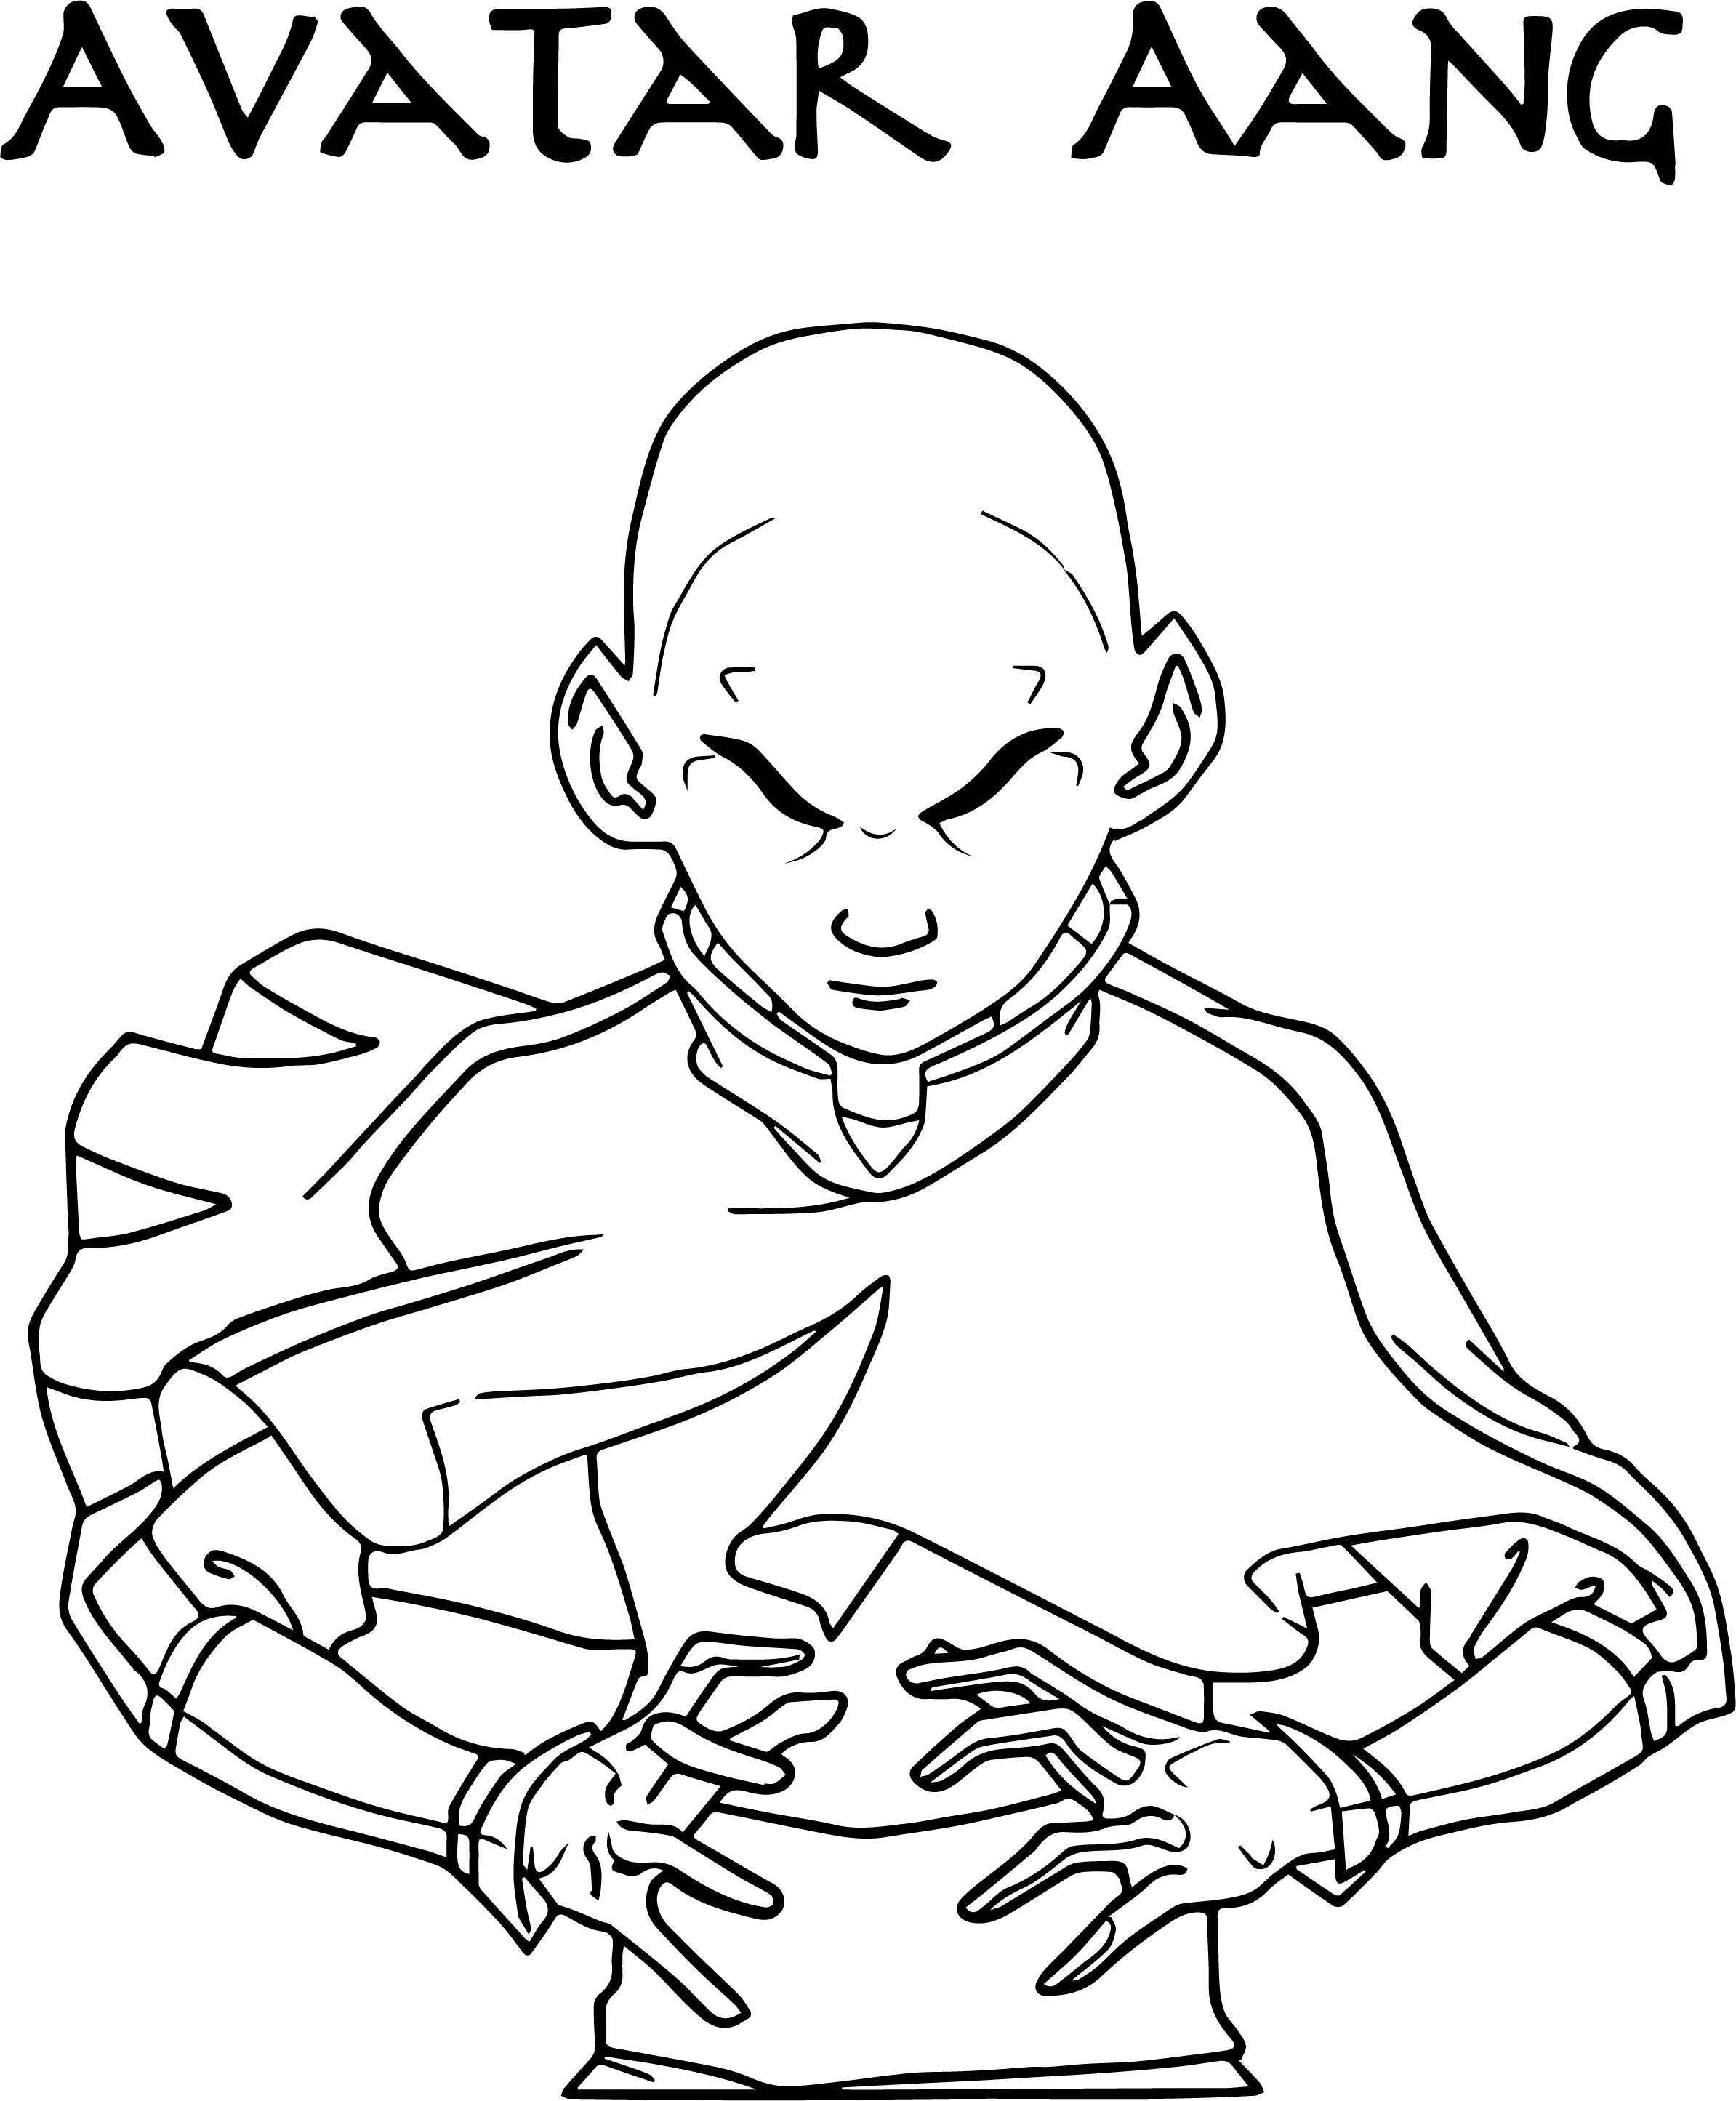 Avatar Aang Stephen Dss Avatar Aang Coloring Page